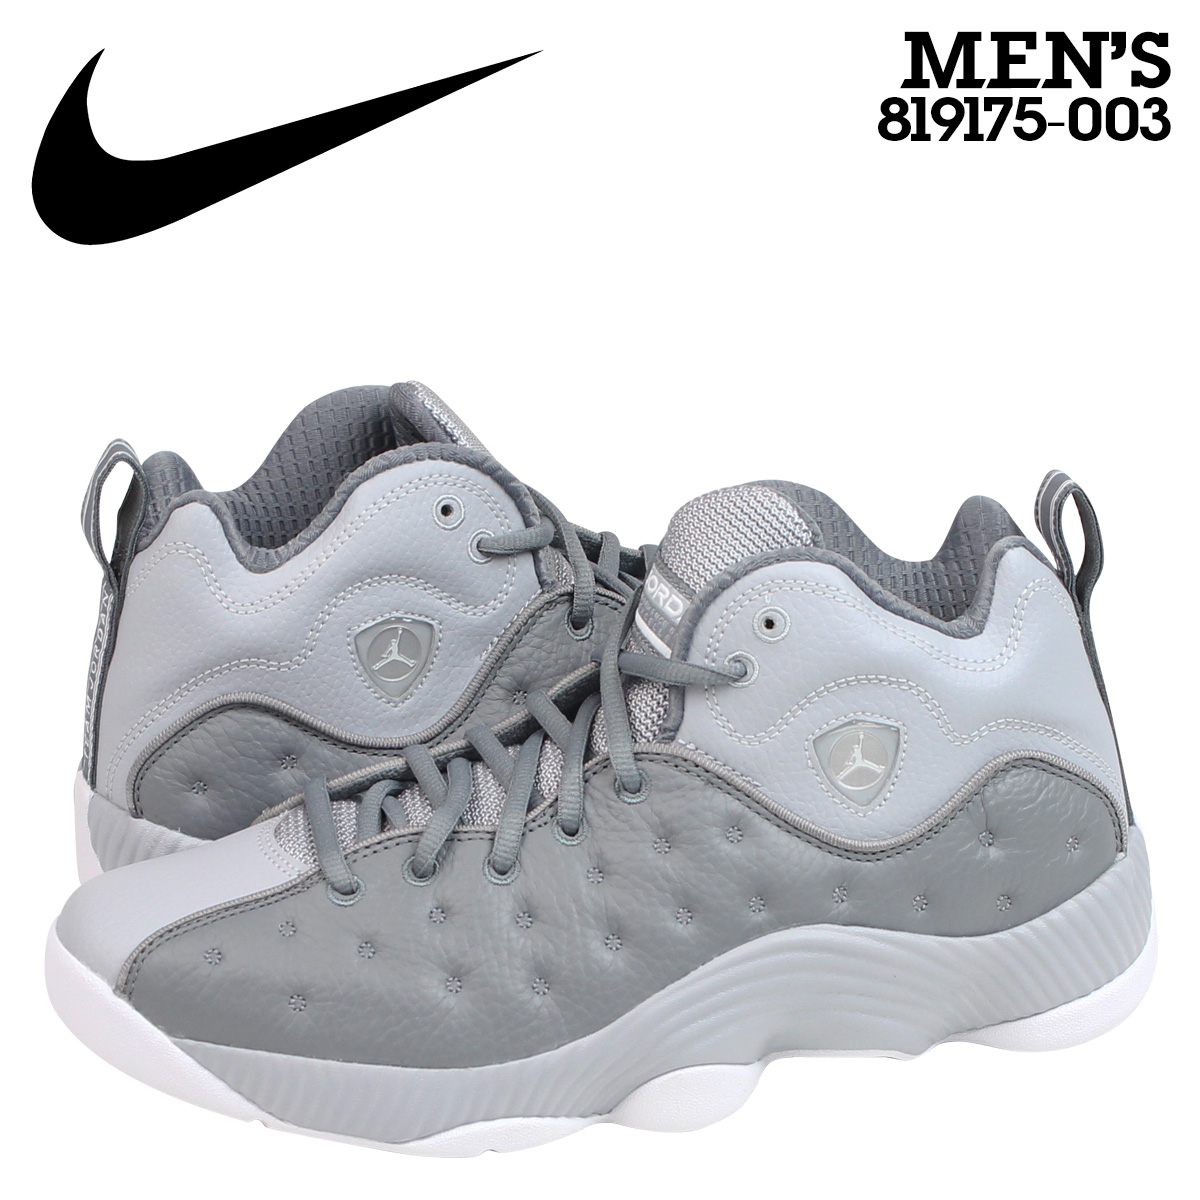 Nike NIKE Air Jordan sneaker JORDAN JUMPMAN TEAM 2 AJ13 Jordan Jumpman team  2 819175-003 mens shoes grey